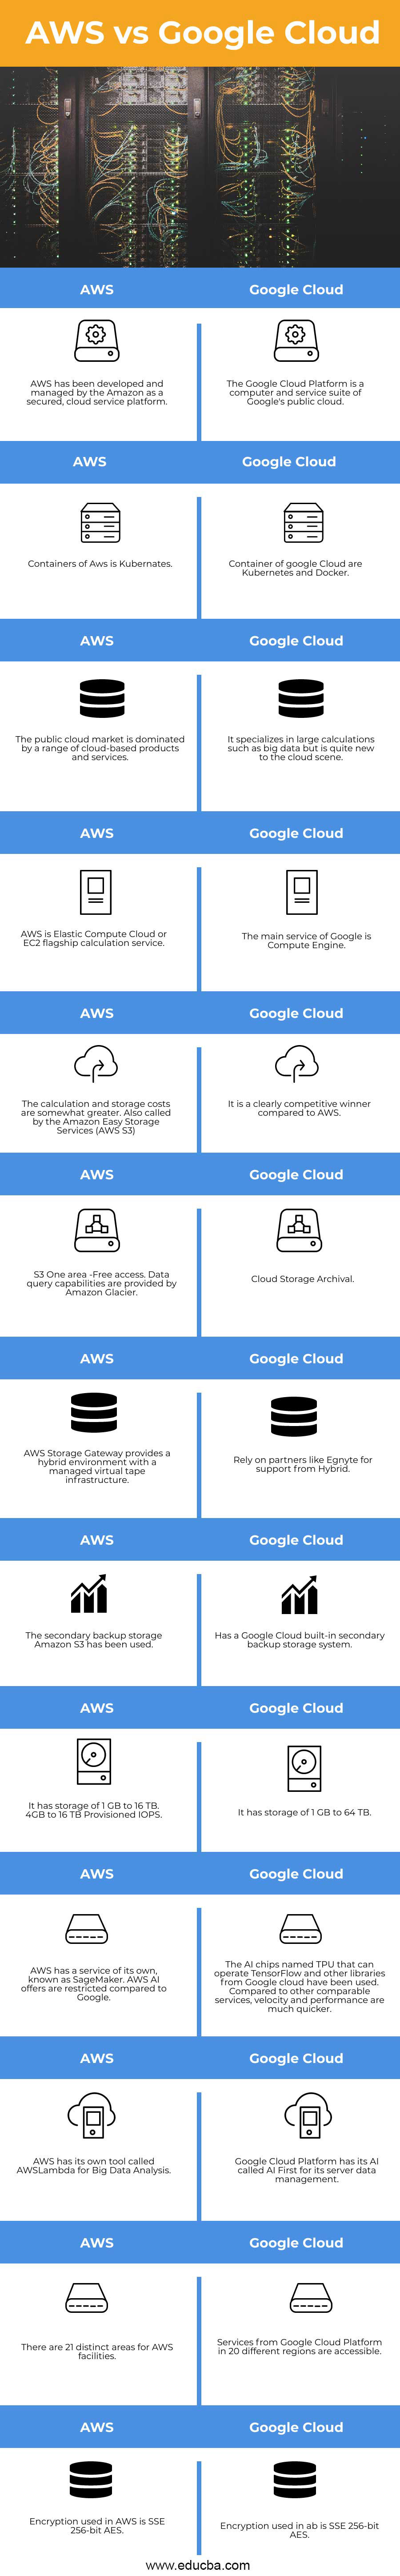 AWS-vs-Google-Cloud-info